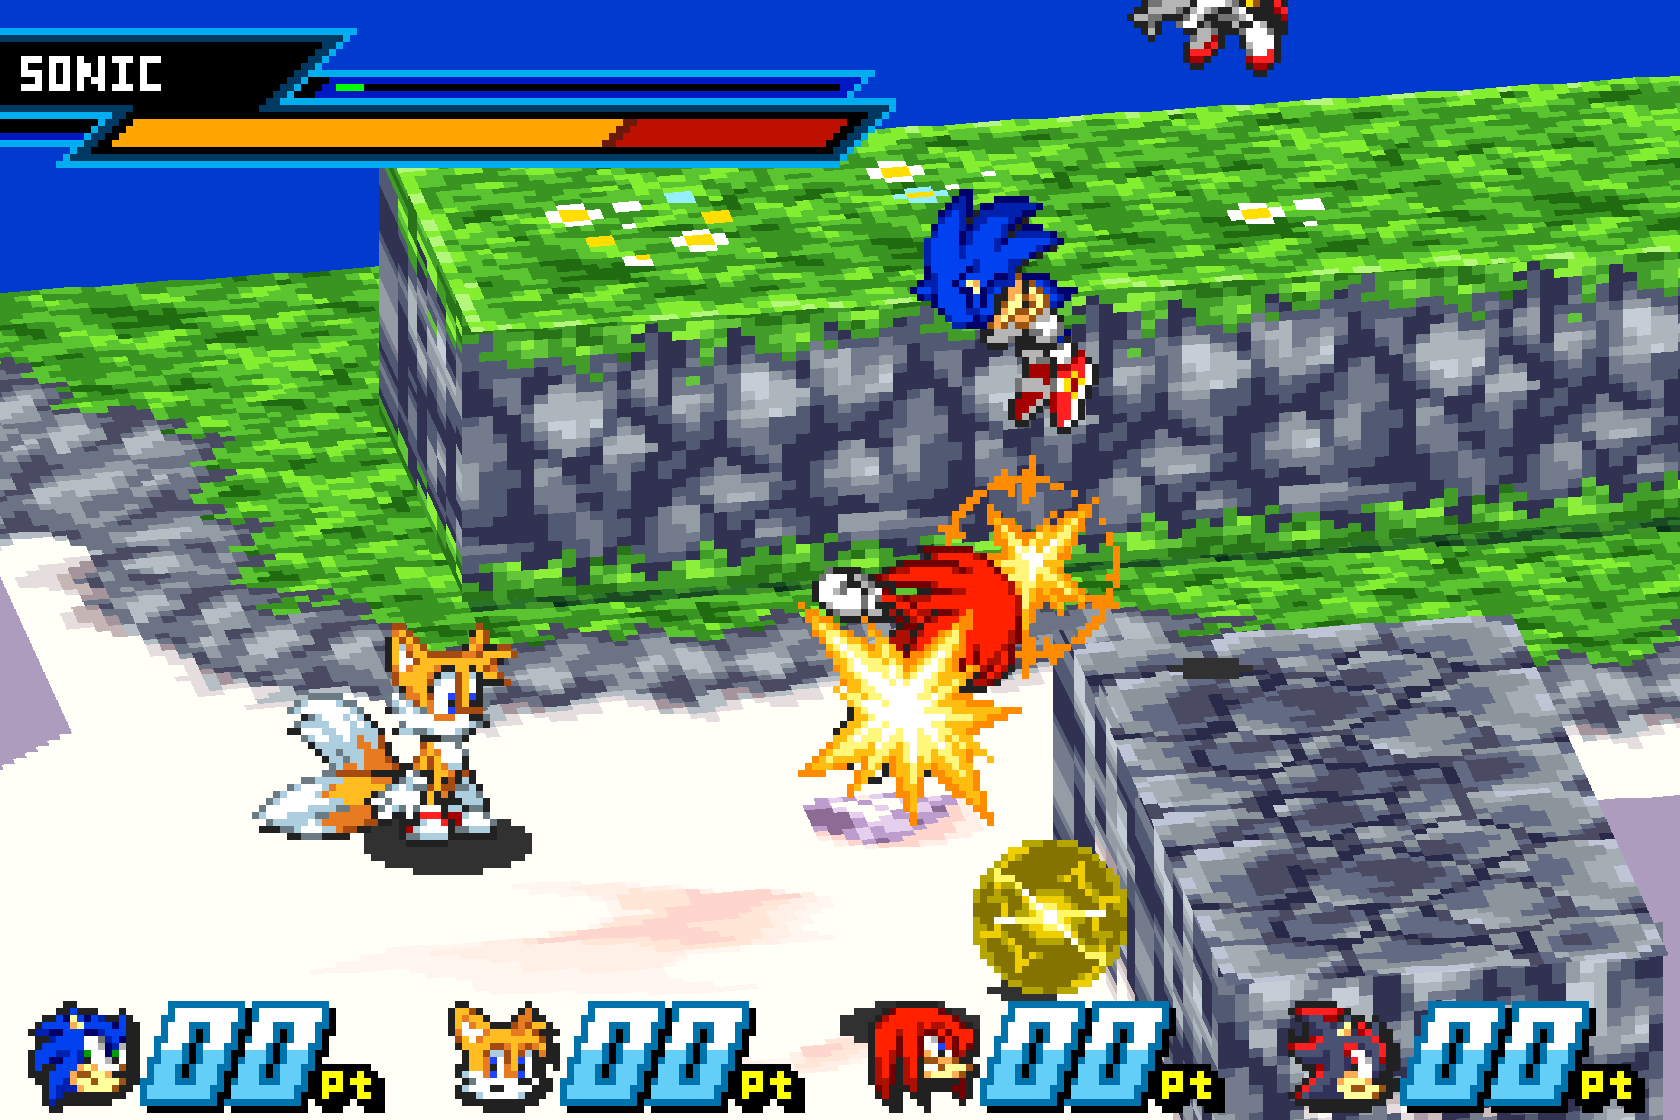 Sonic Battle uses affine sprites to create the arena